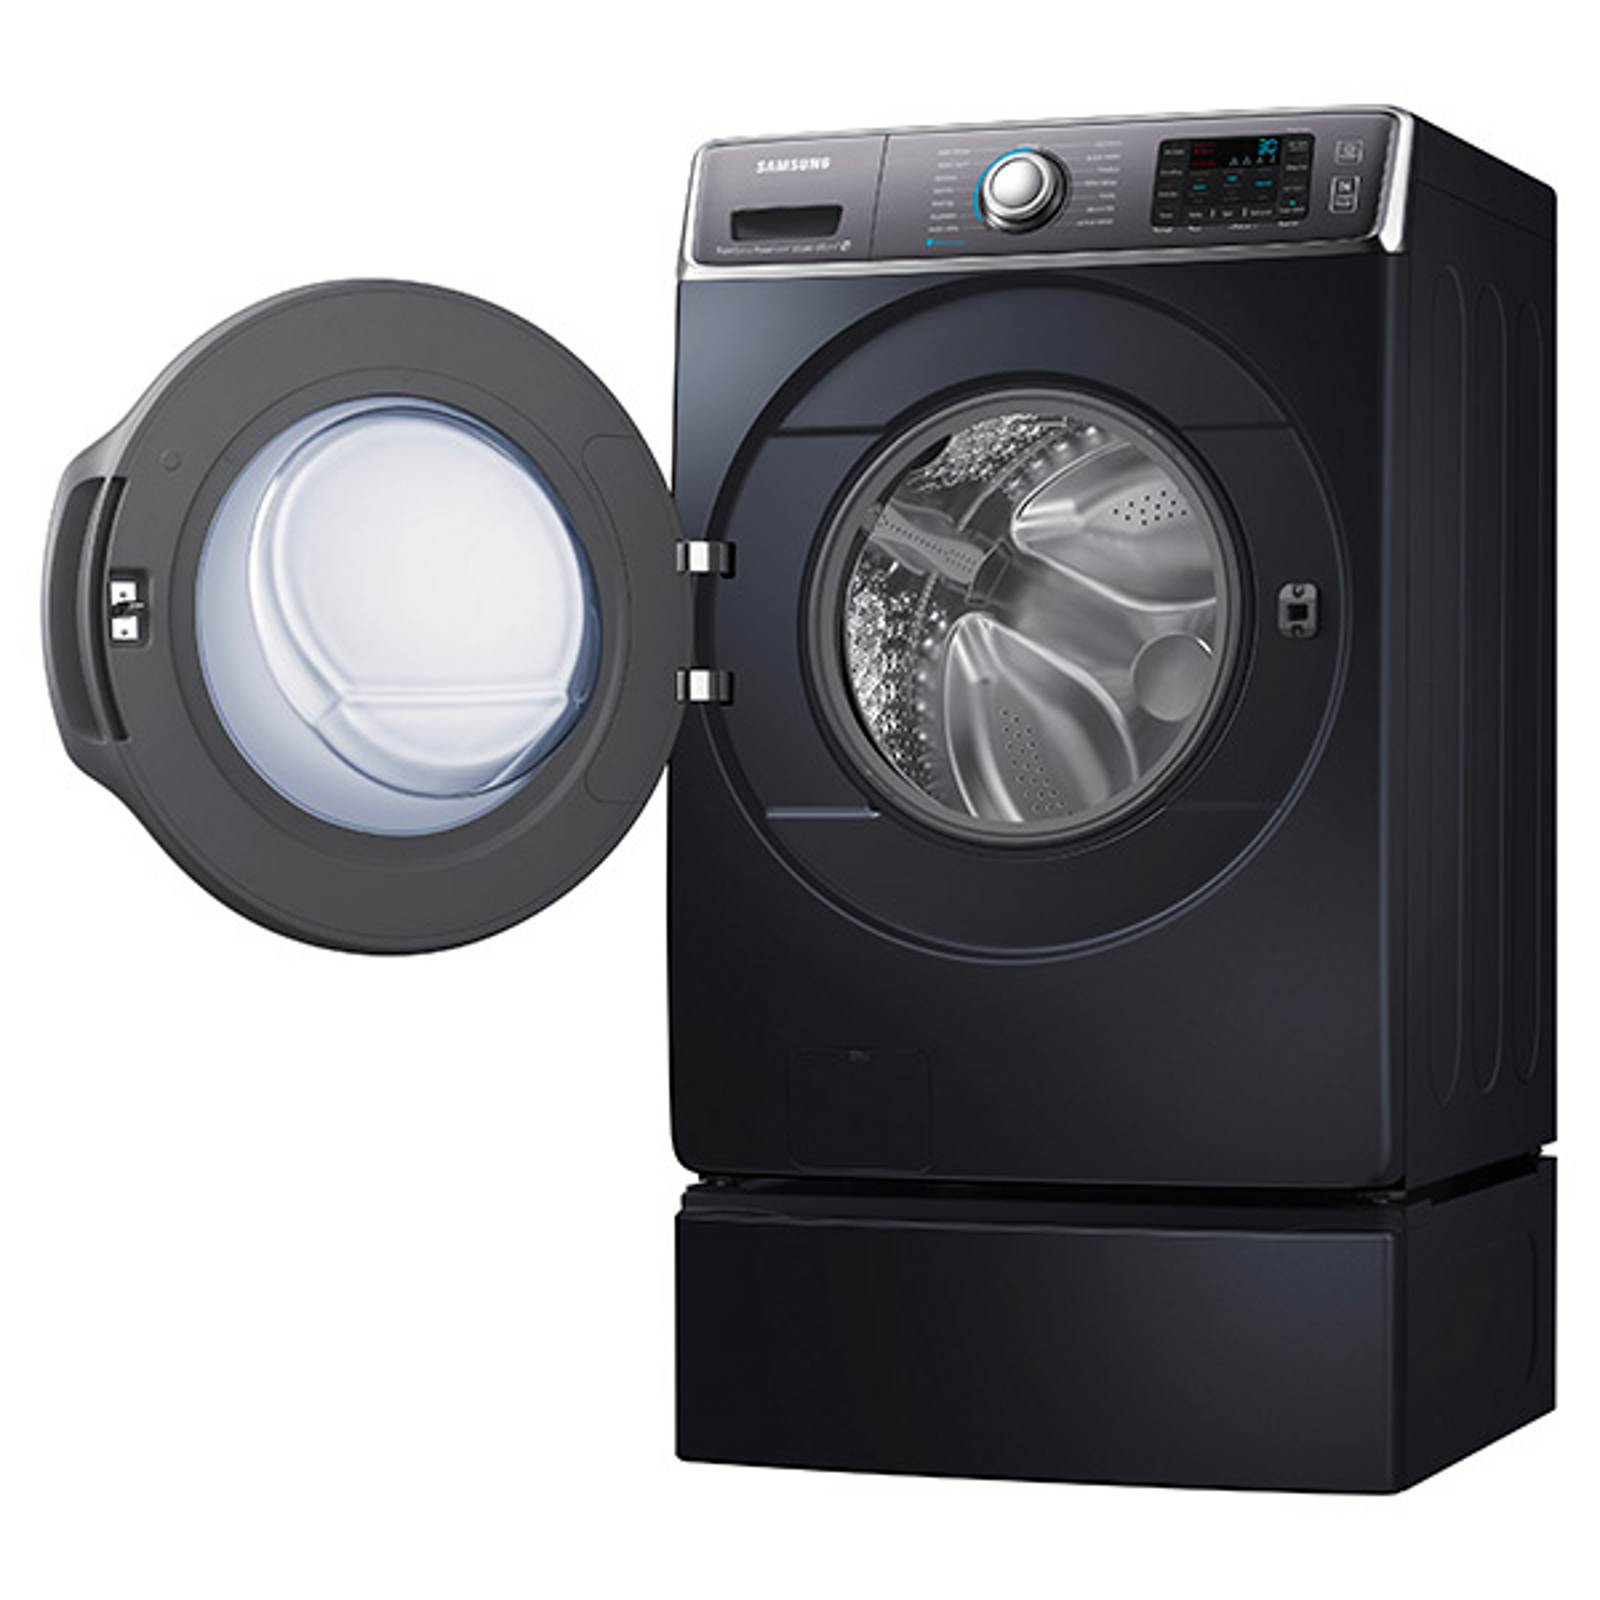 Samsung 5.6 cu. ft. Front-Load Washer - Onyx